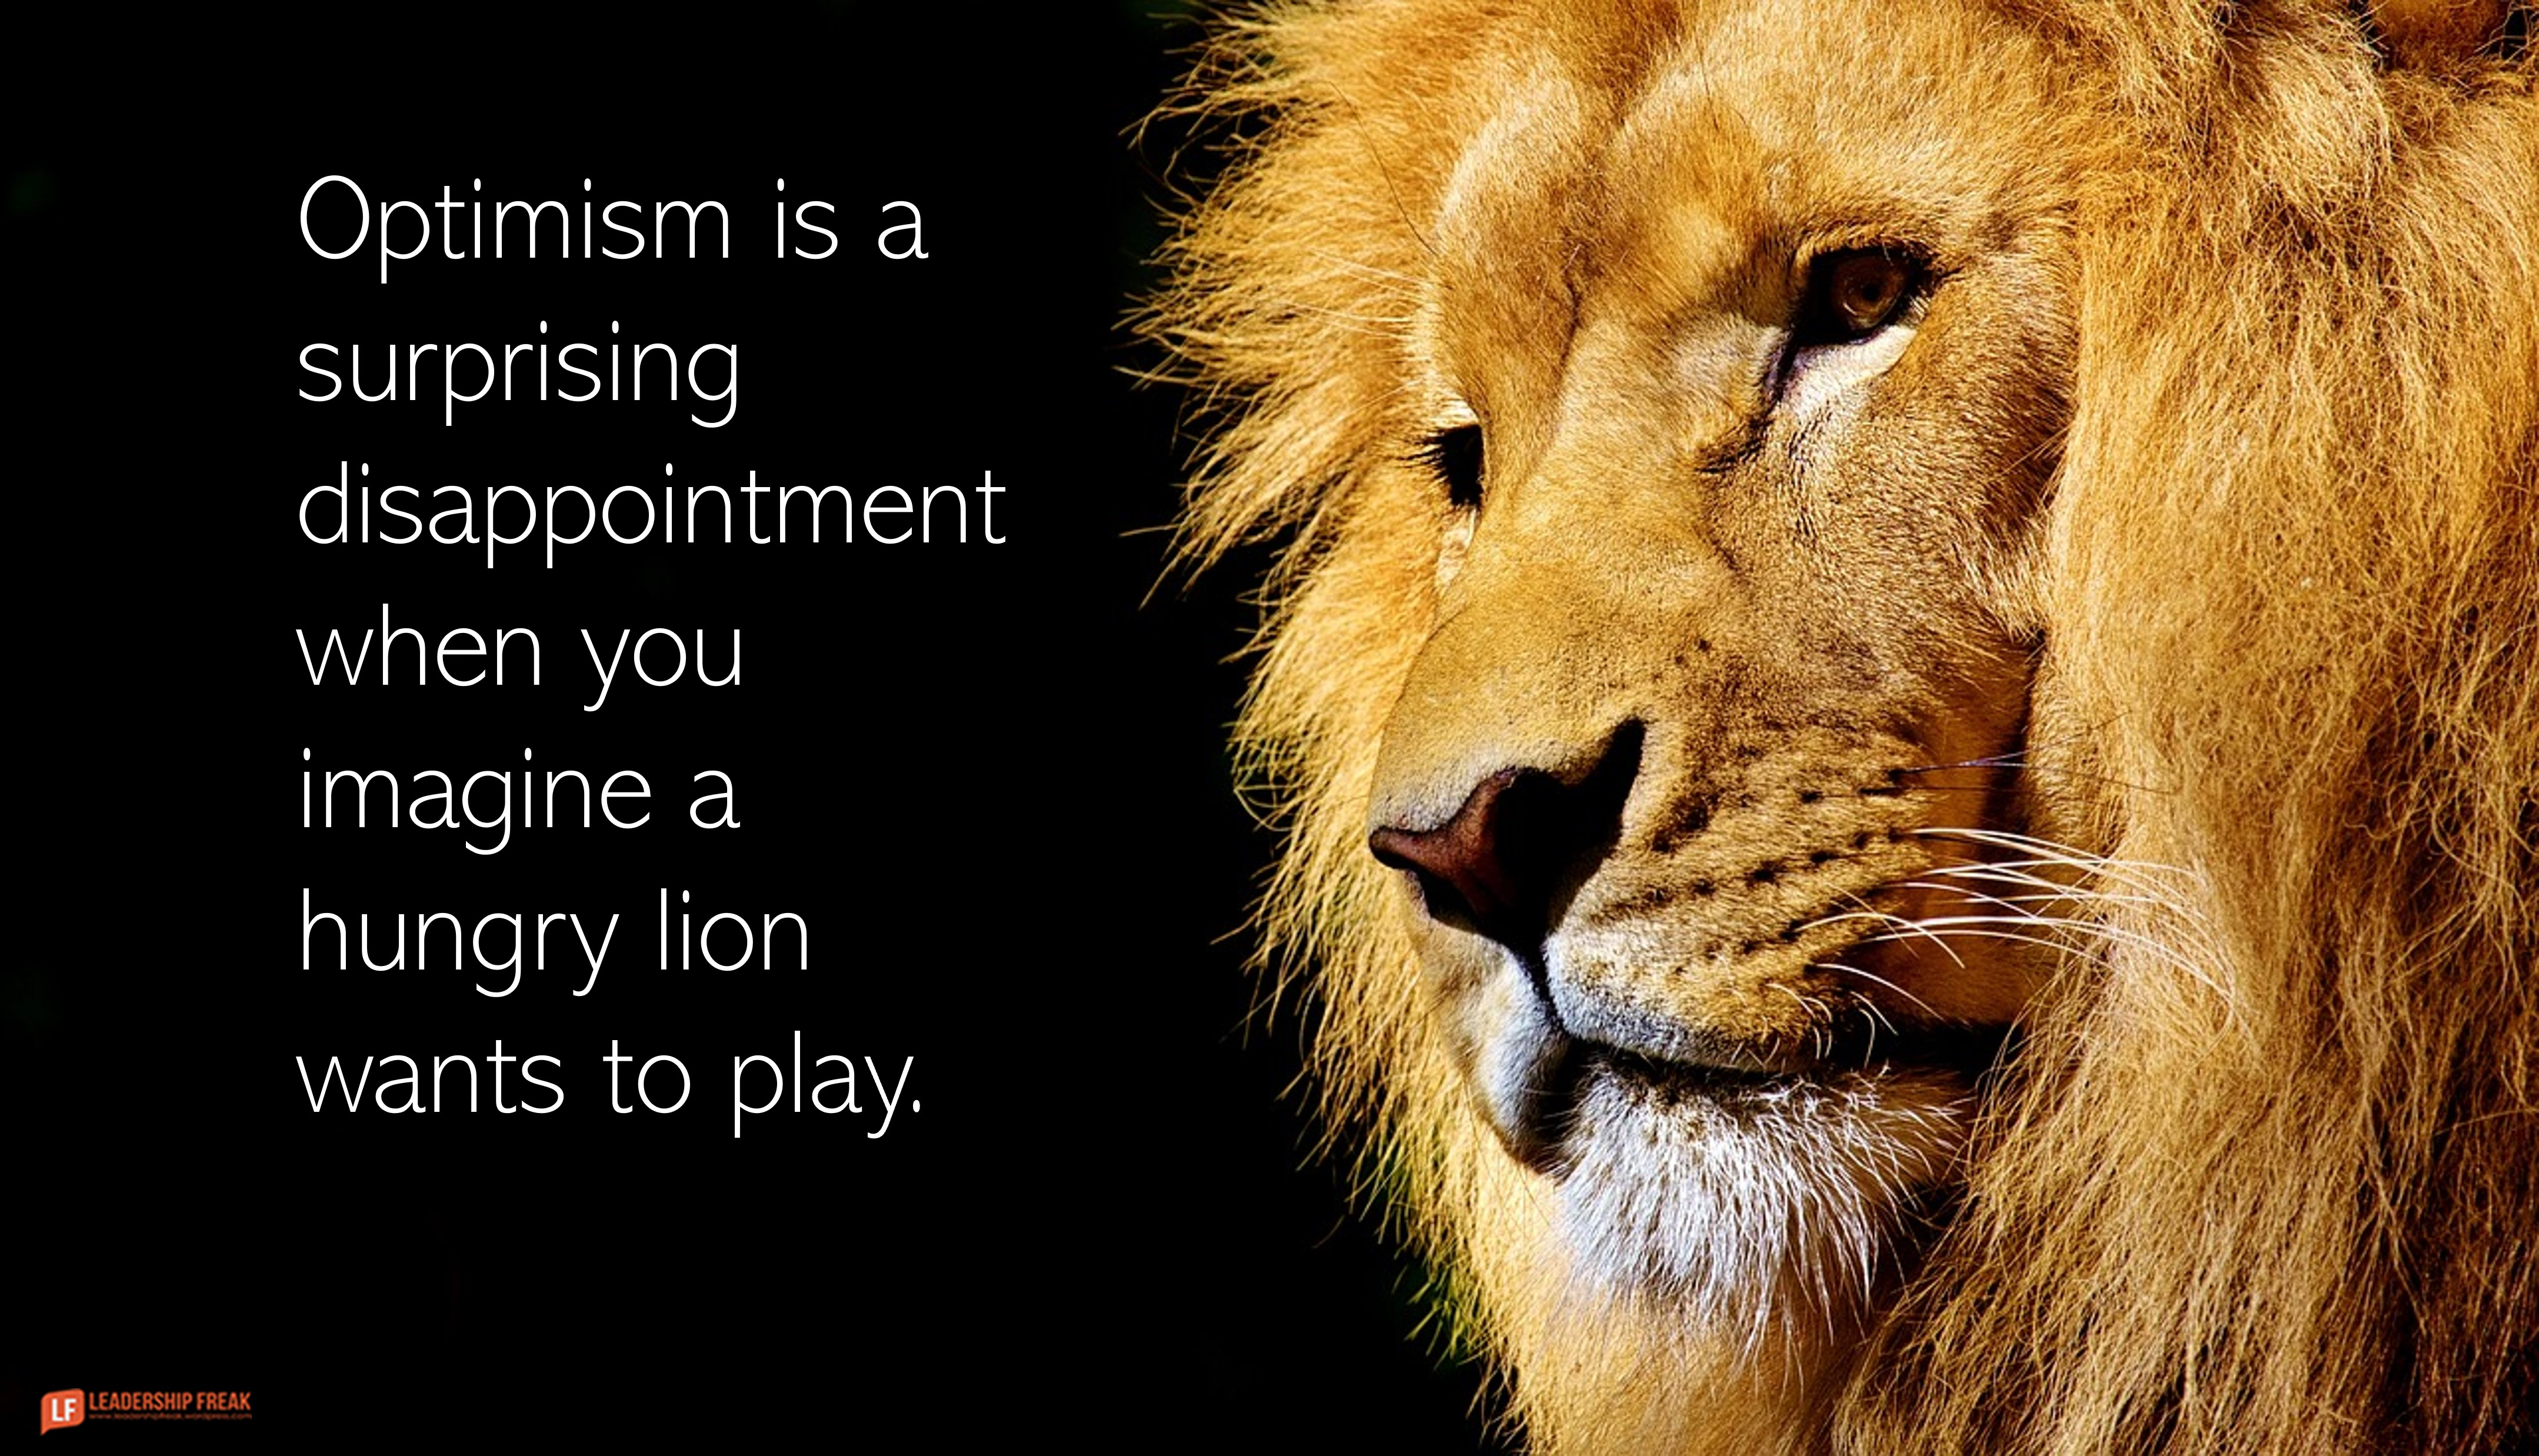 Lion  Optimism is a surprising disappointment when you imagine a hungry lion wants to  play.